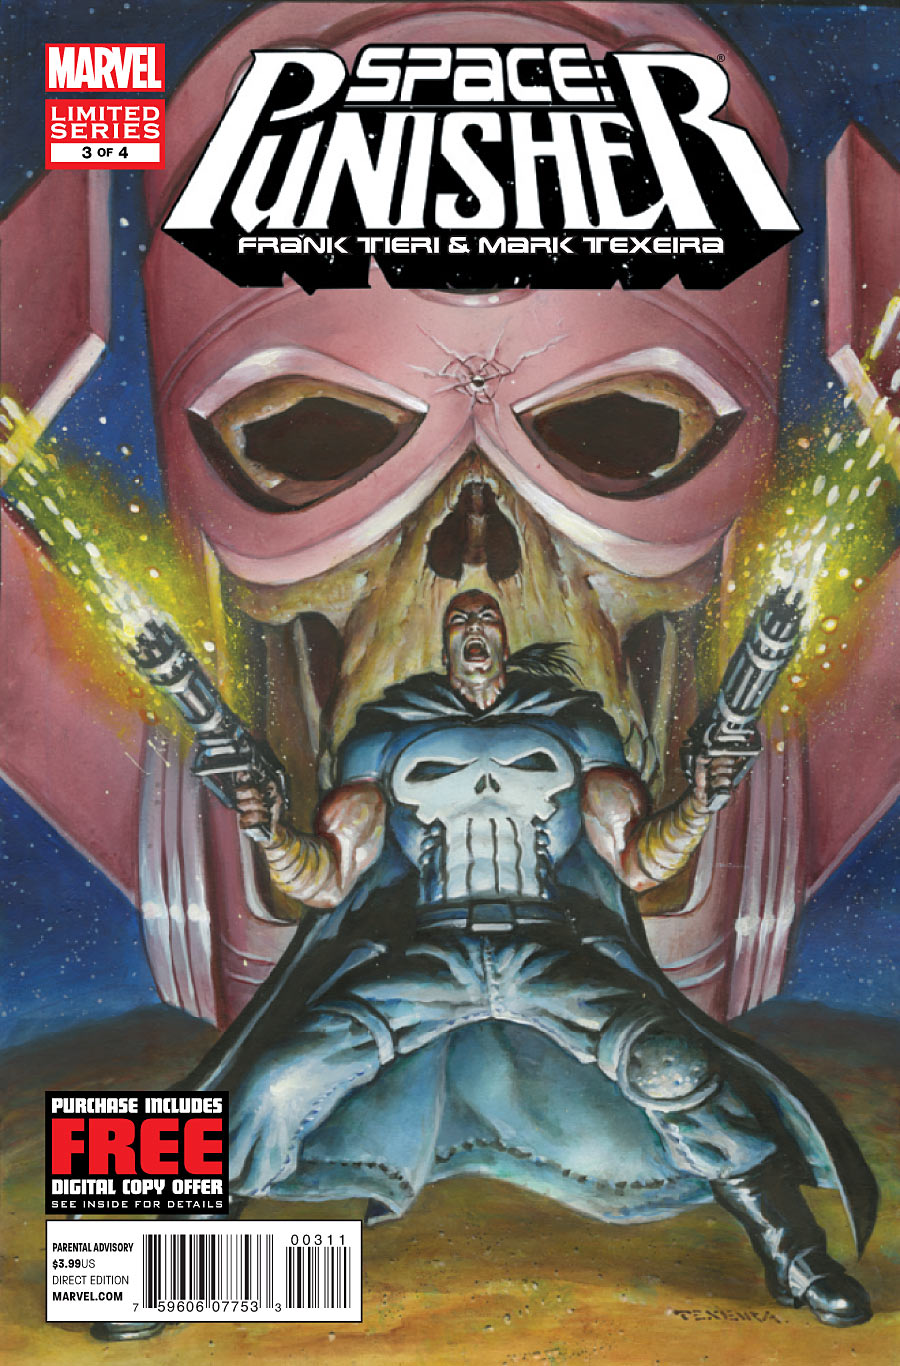 Space: Punisher Vol 1 3